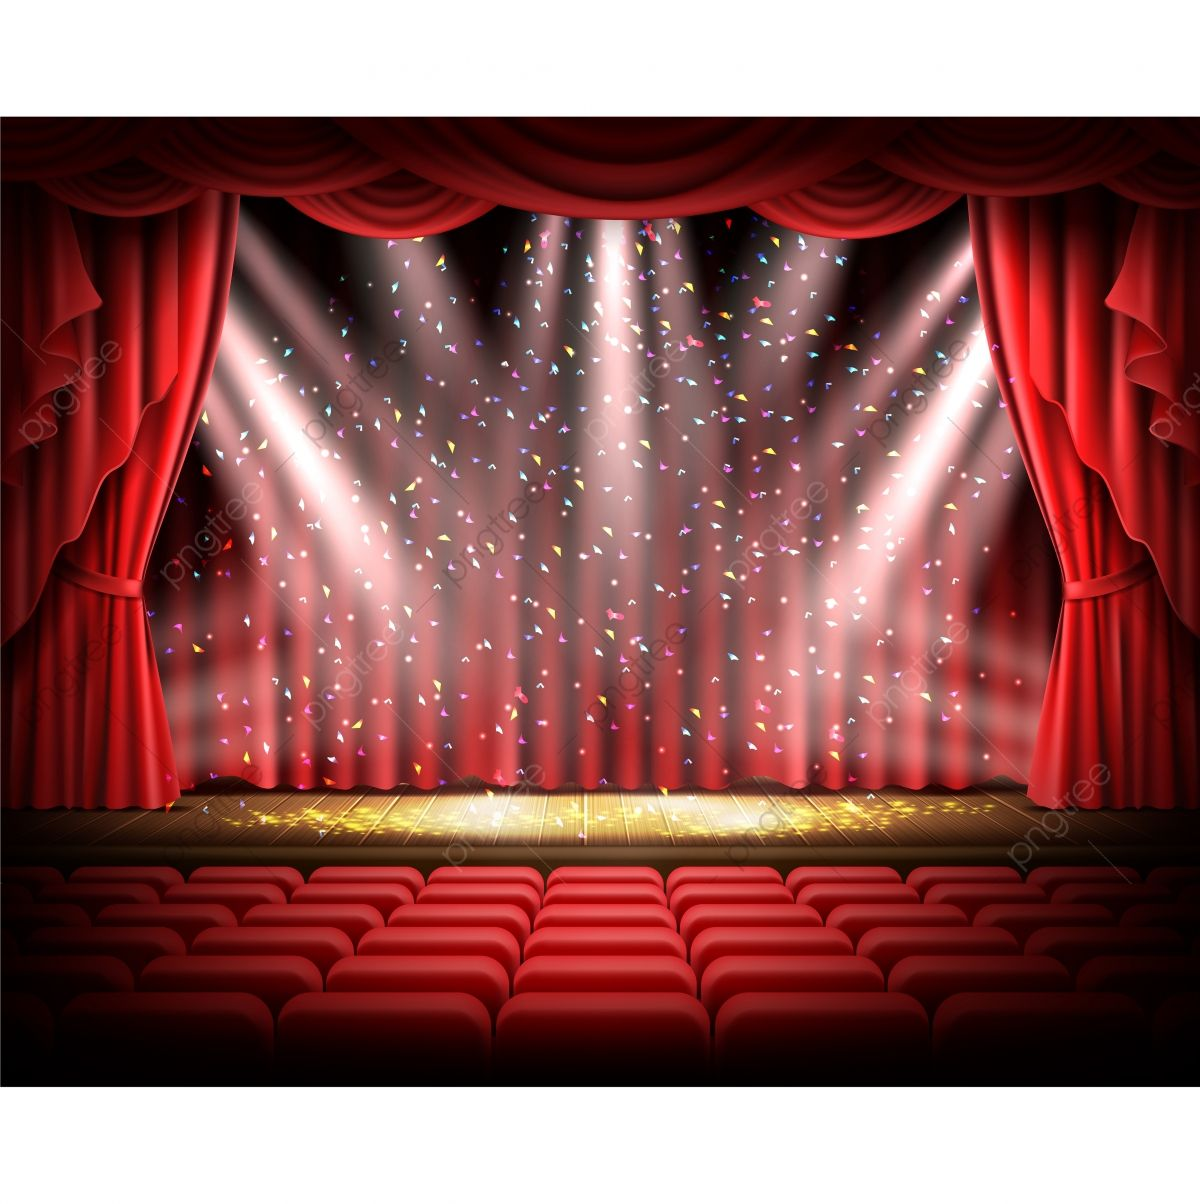 Red Curtain And Empty Theatrical Scene Stage Red Curtain Png